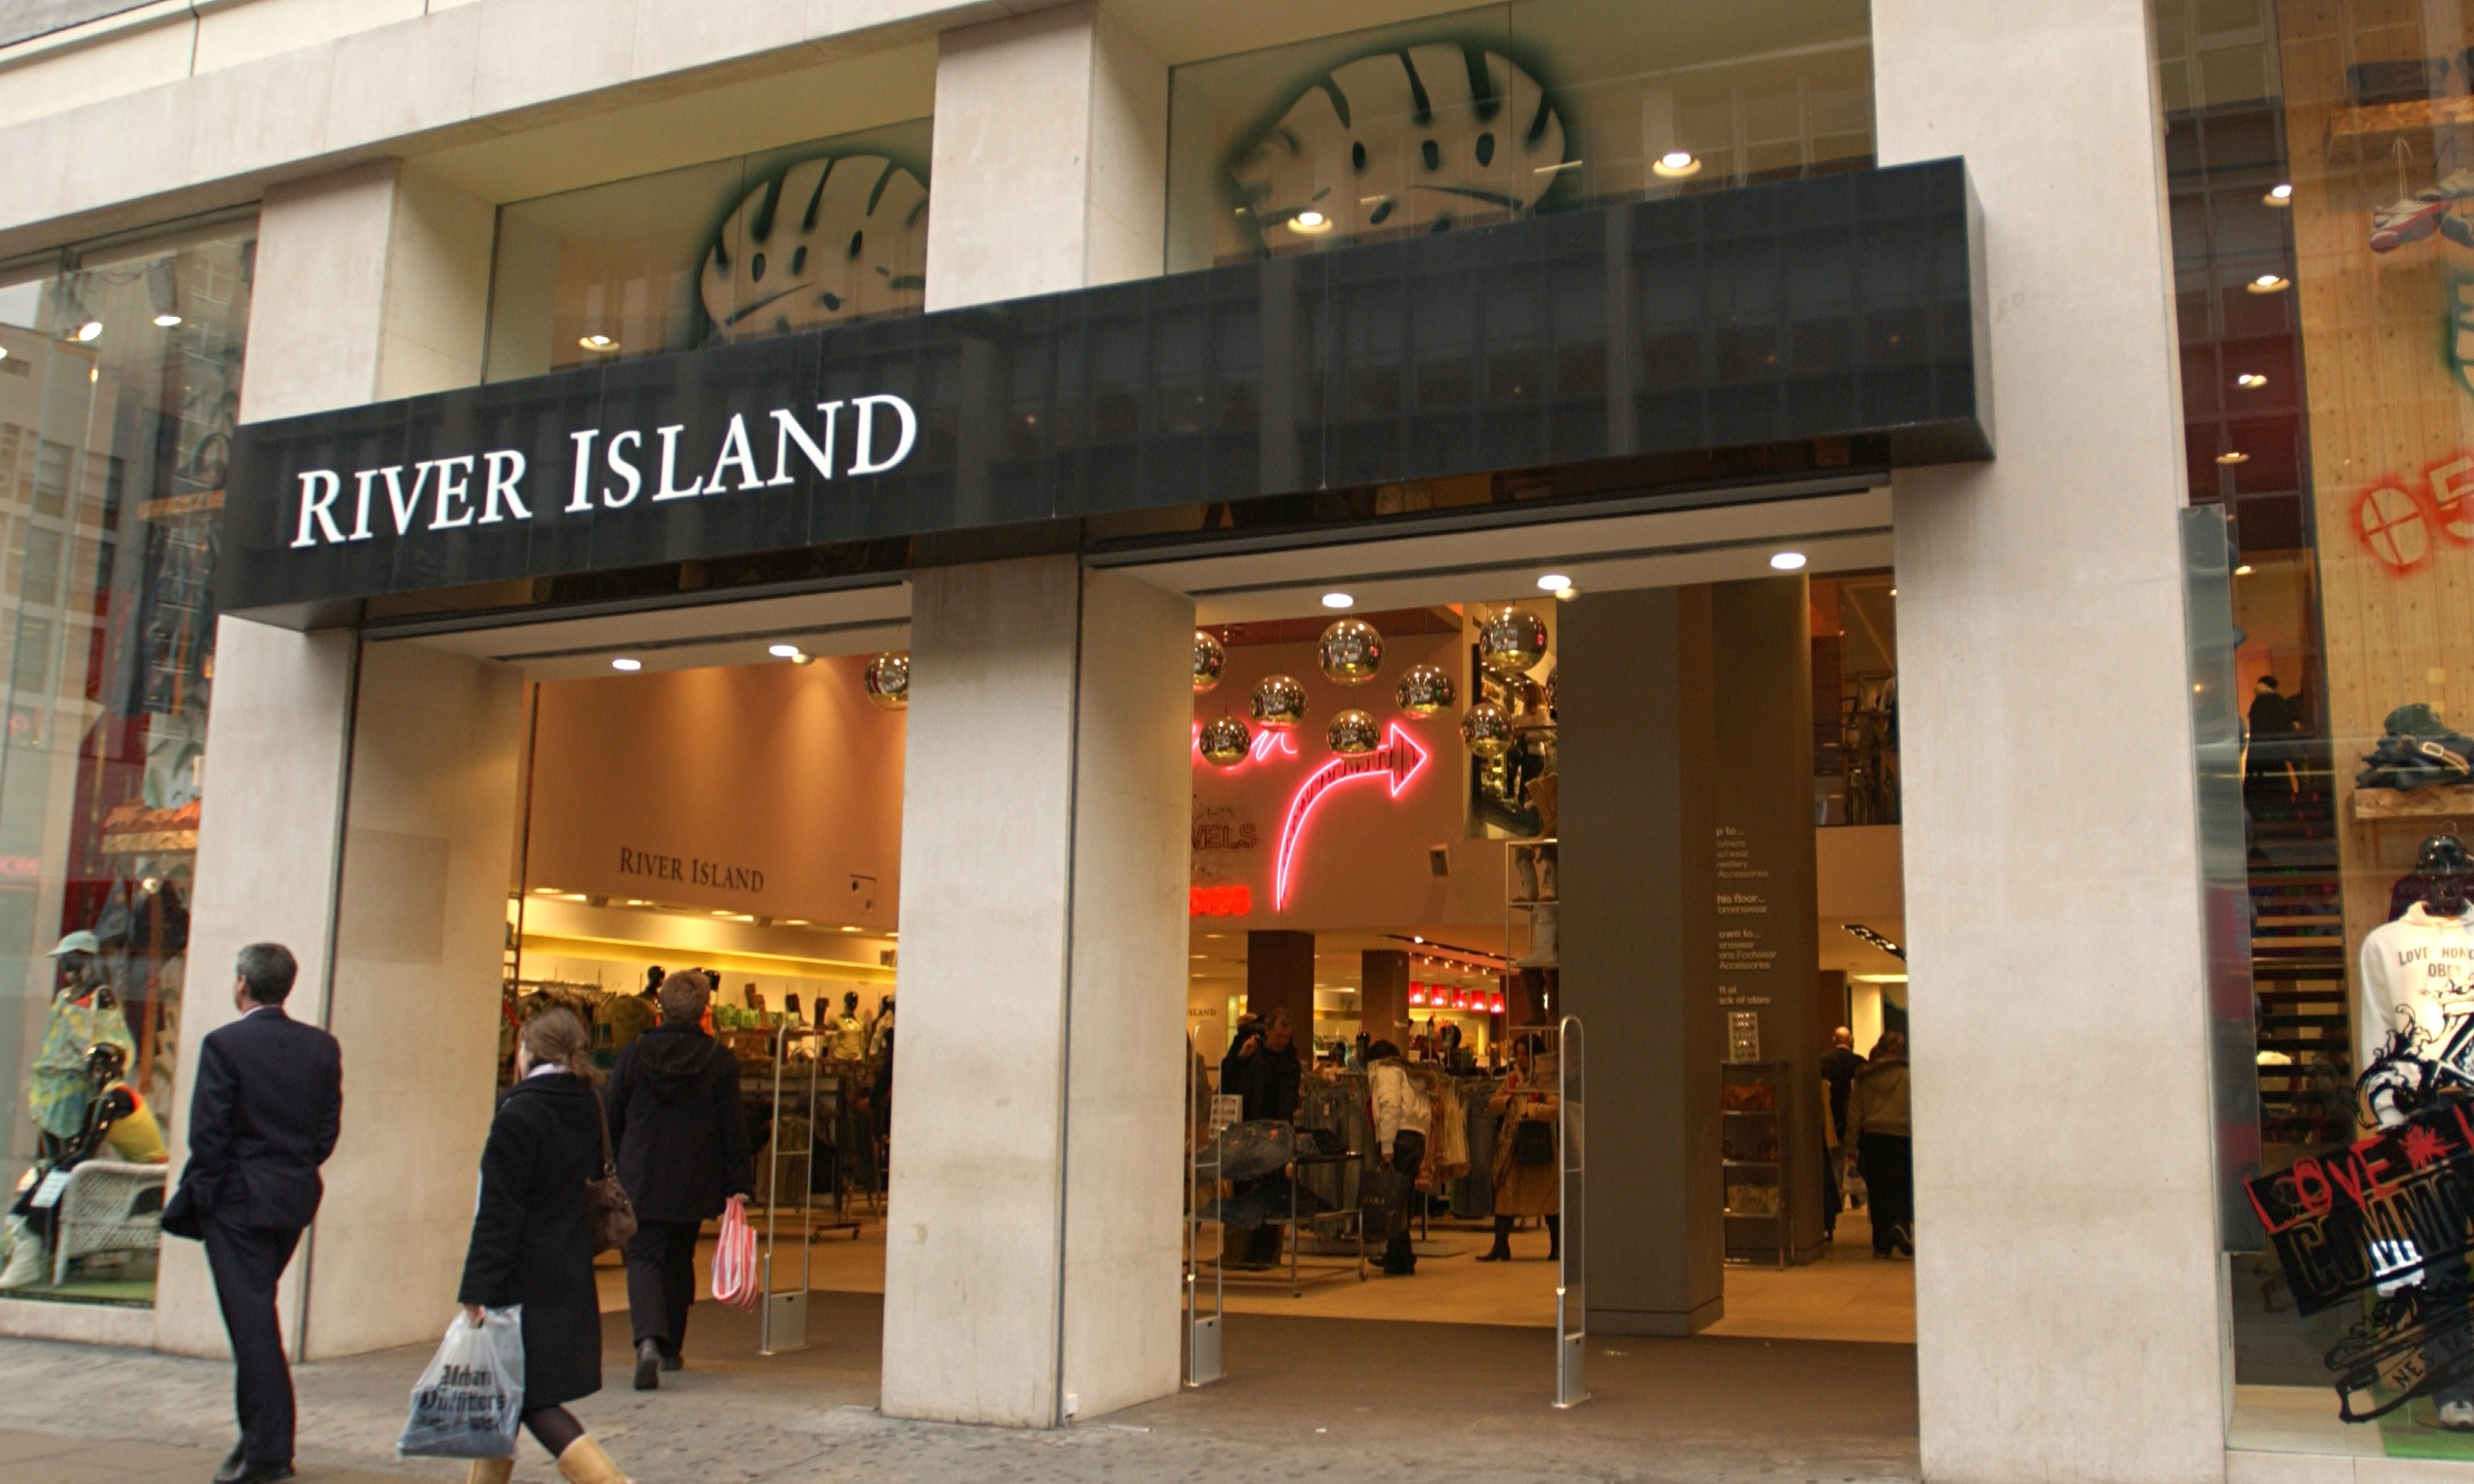 riverisland_River Island staff set my alarm bells ringing | Money | The Guardian